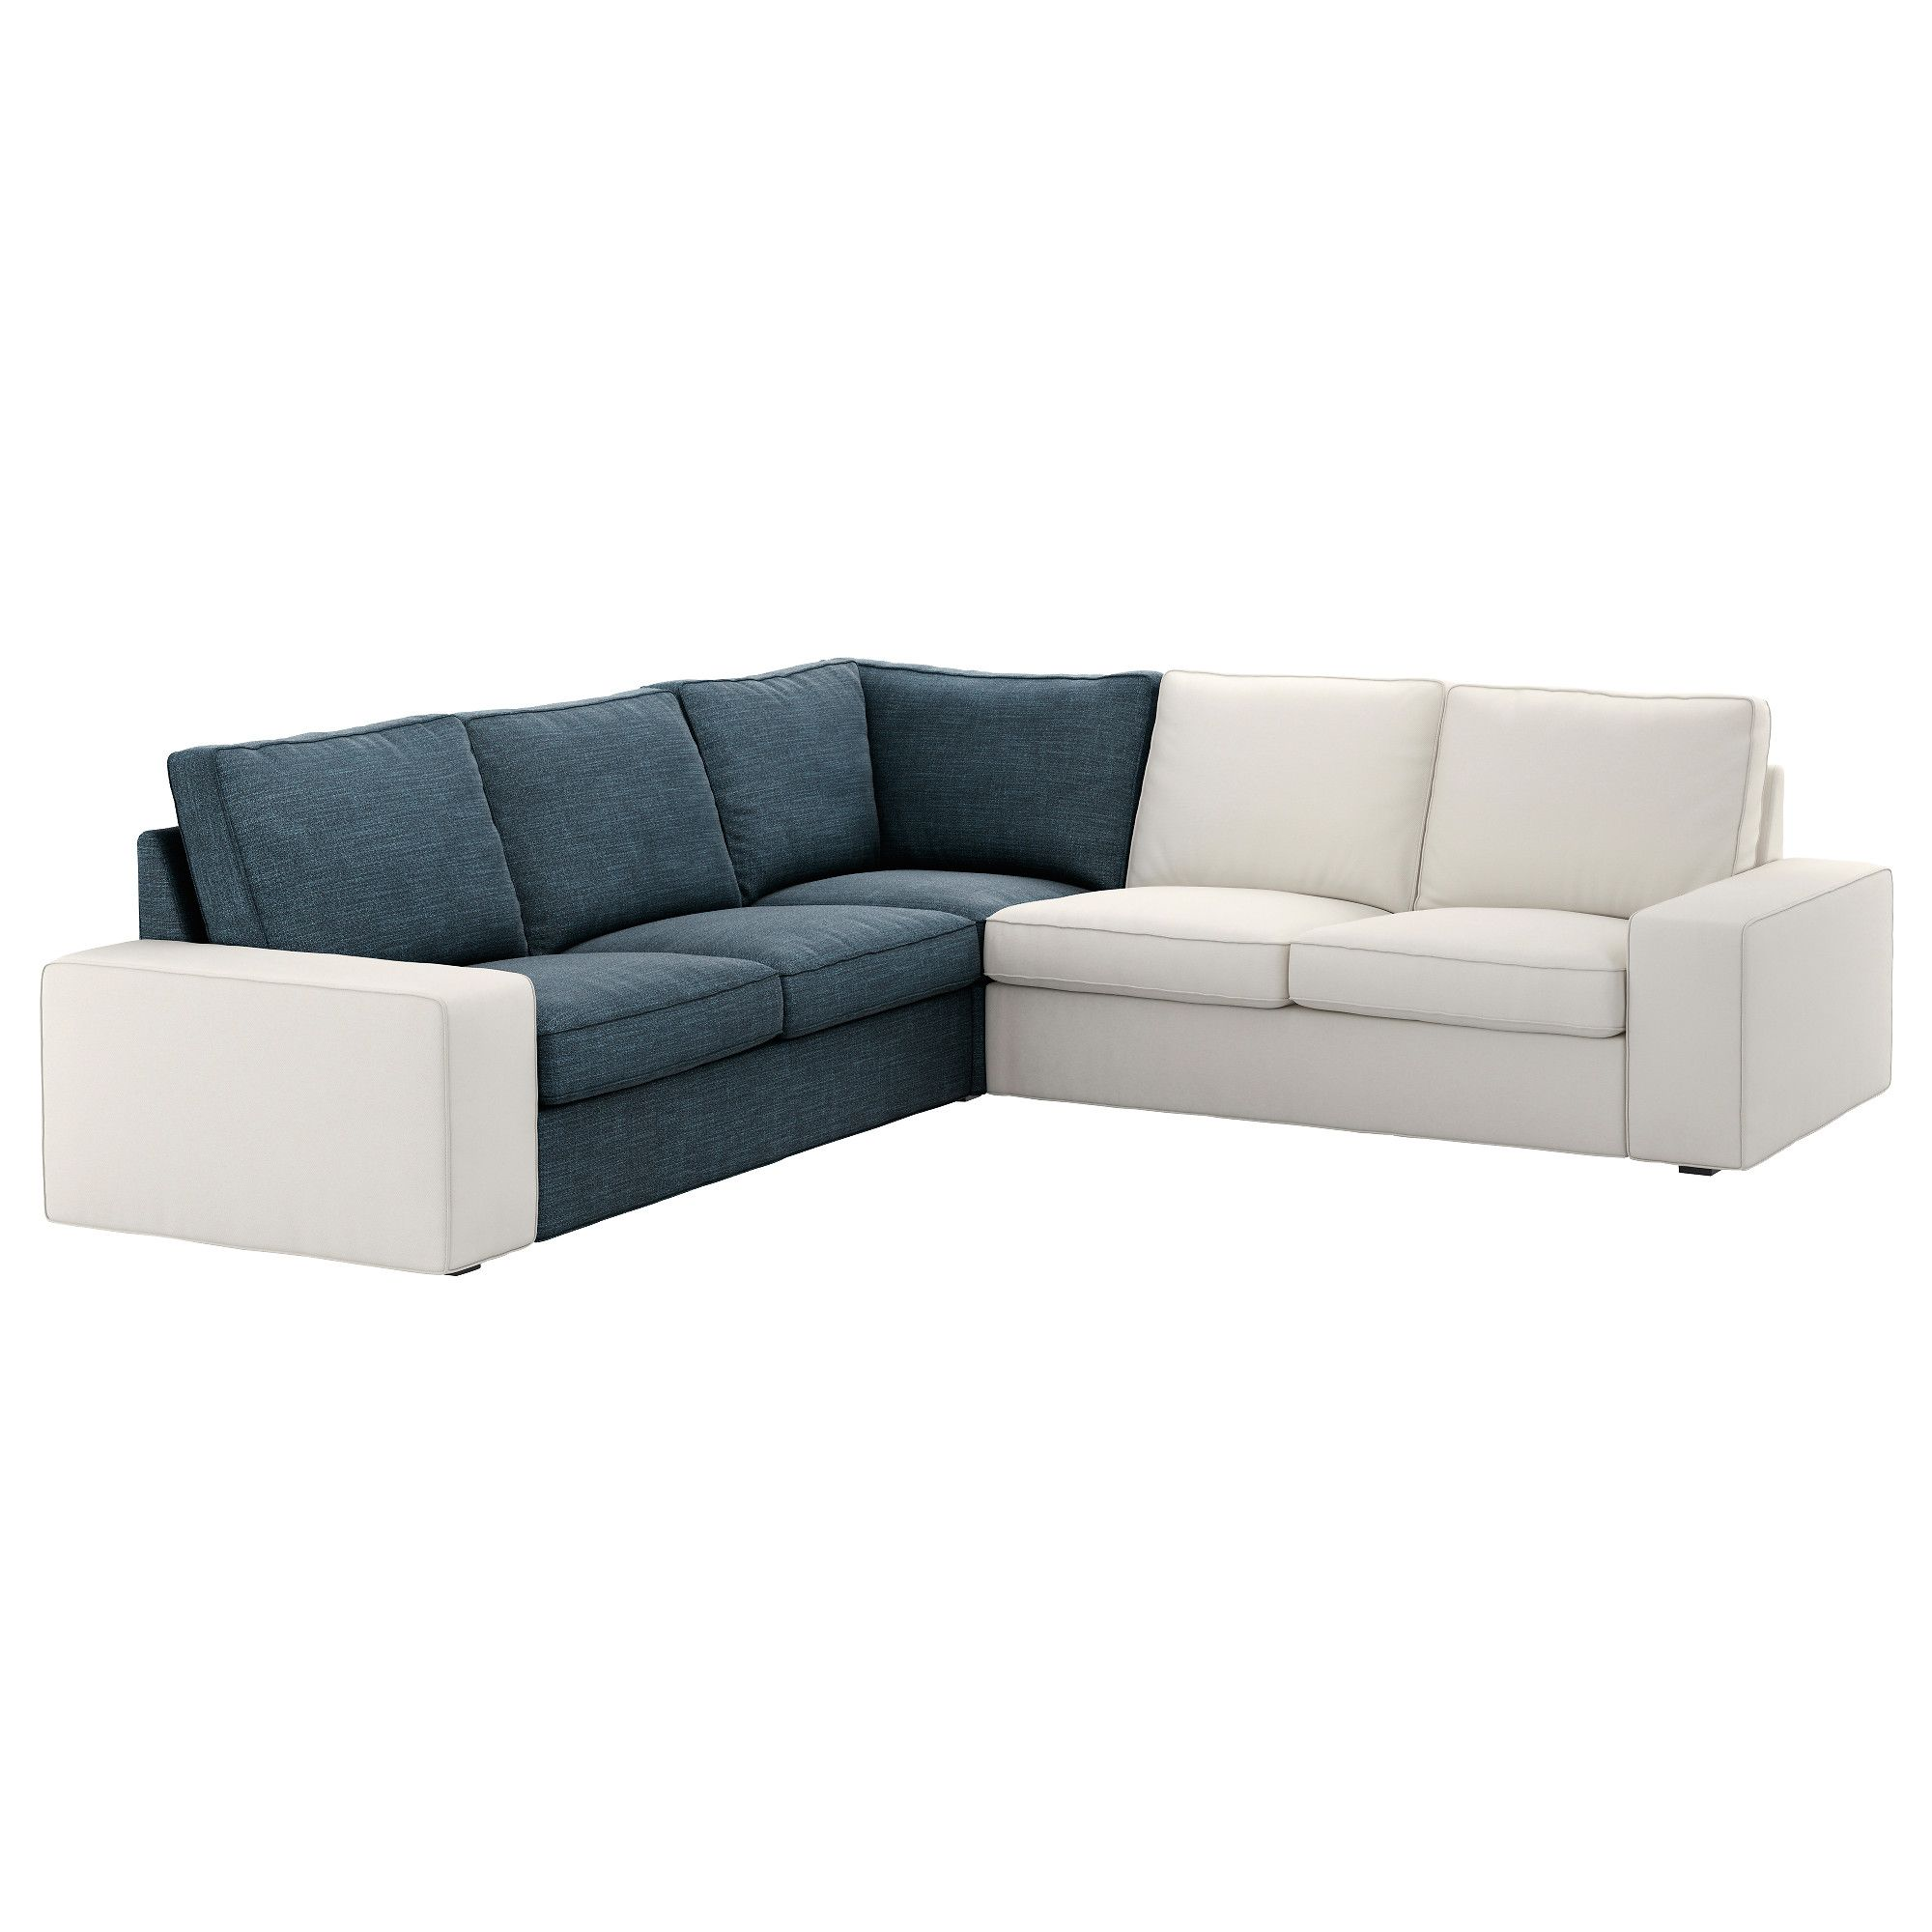 kivik u shaped sofa 7 seat hillared dark blue ikea in 2019 living rh pinterest com